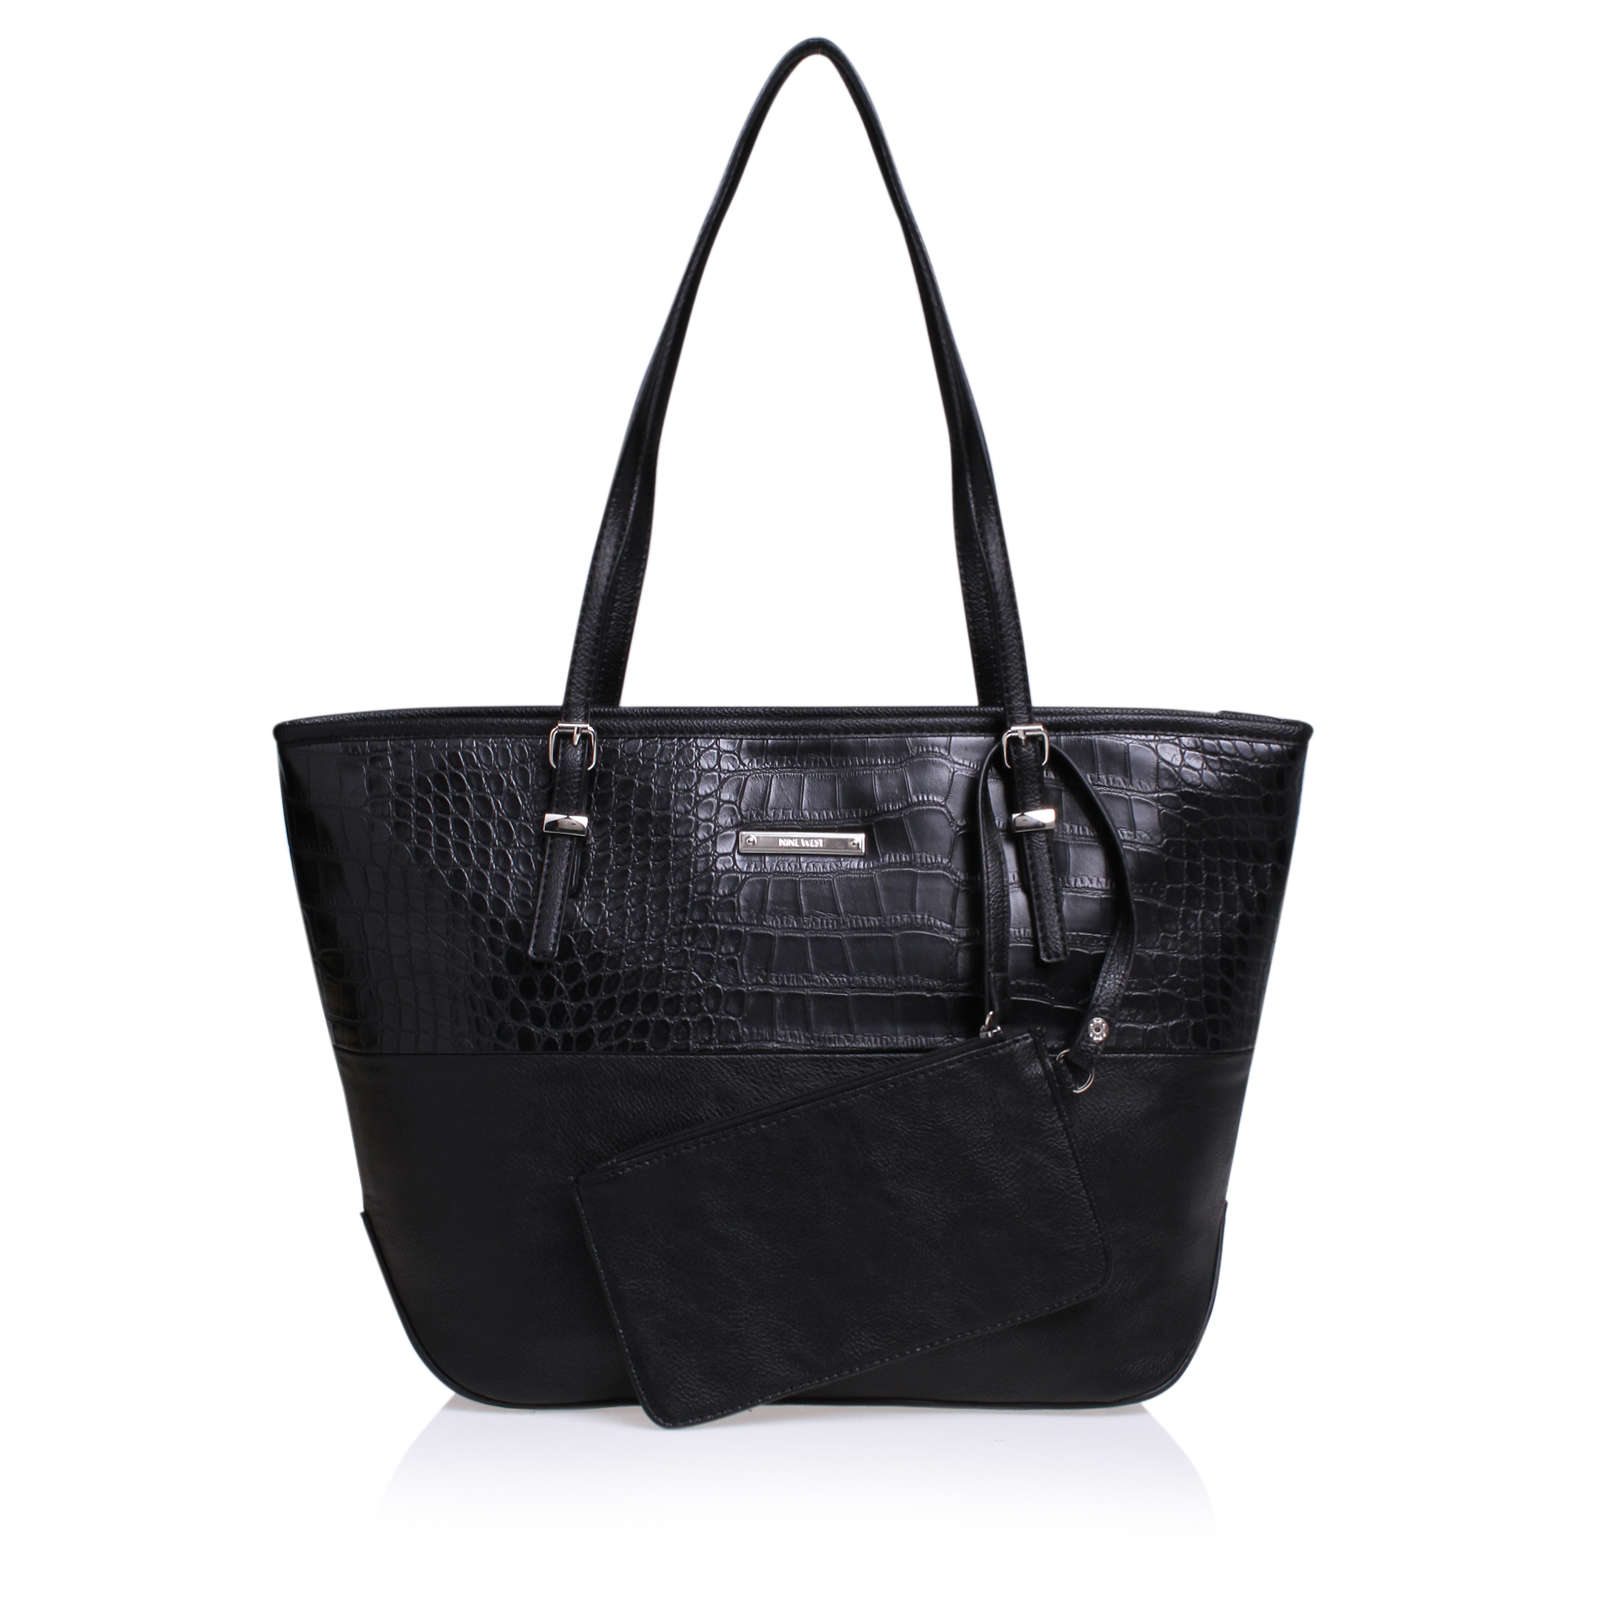 SOCIETY GIRL TOTE MD